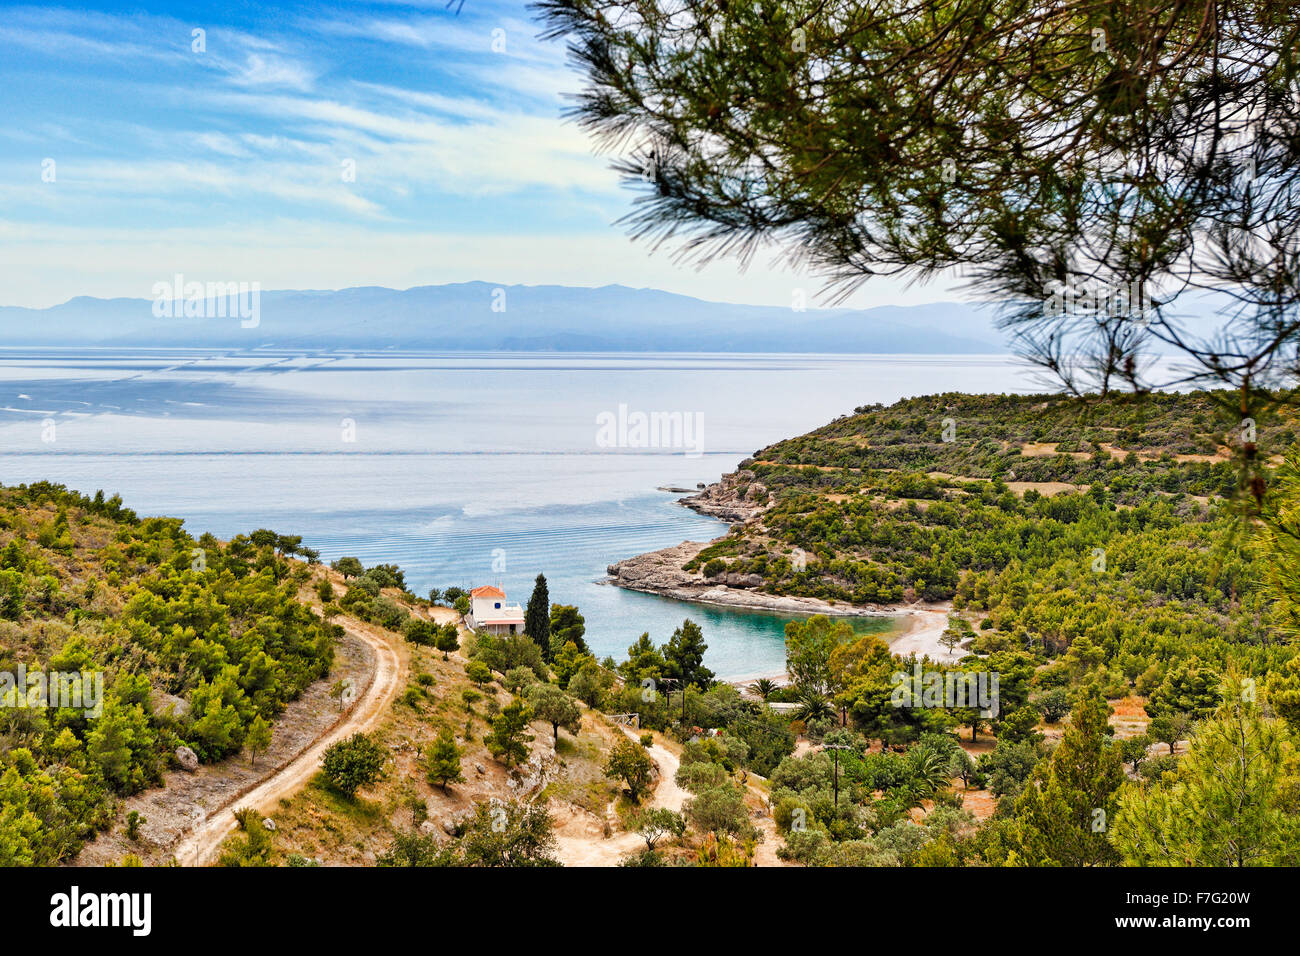 Country houses on the west side of Spetses island, Greece - Stock Image